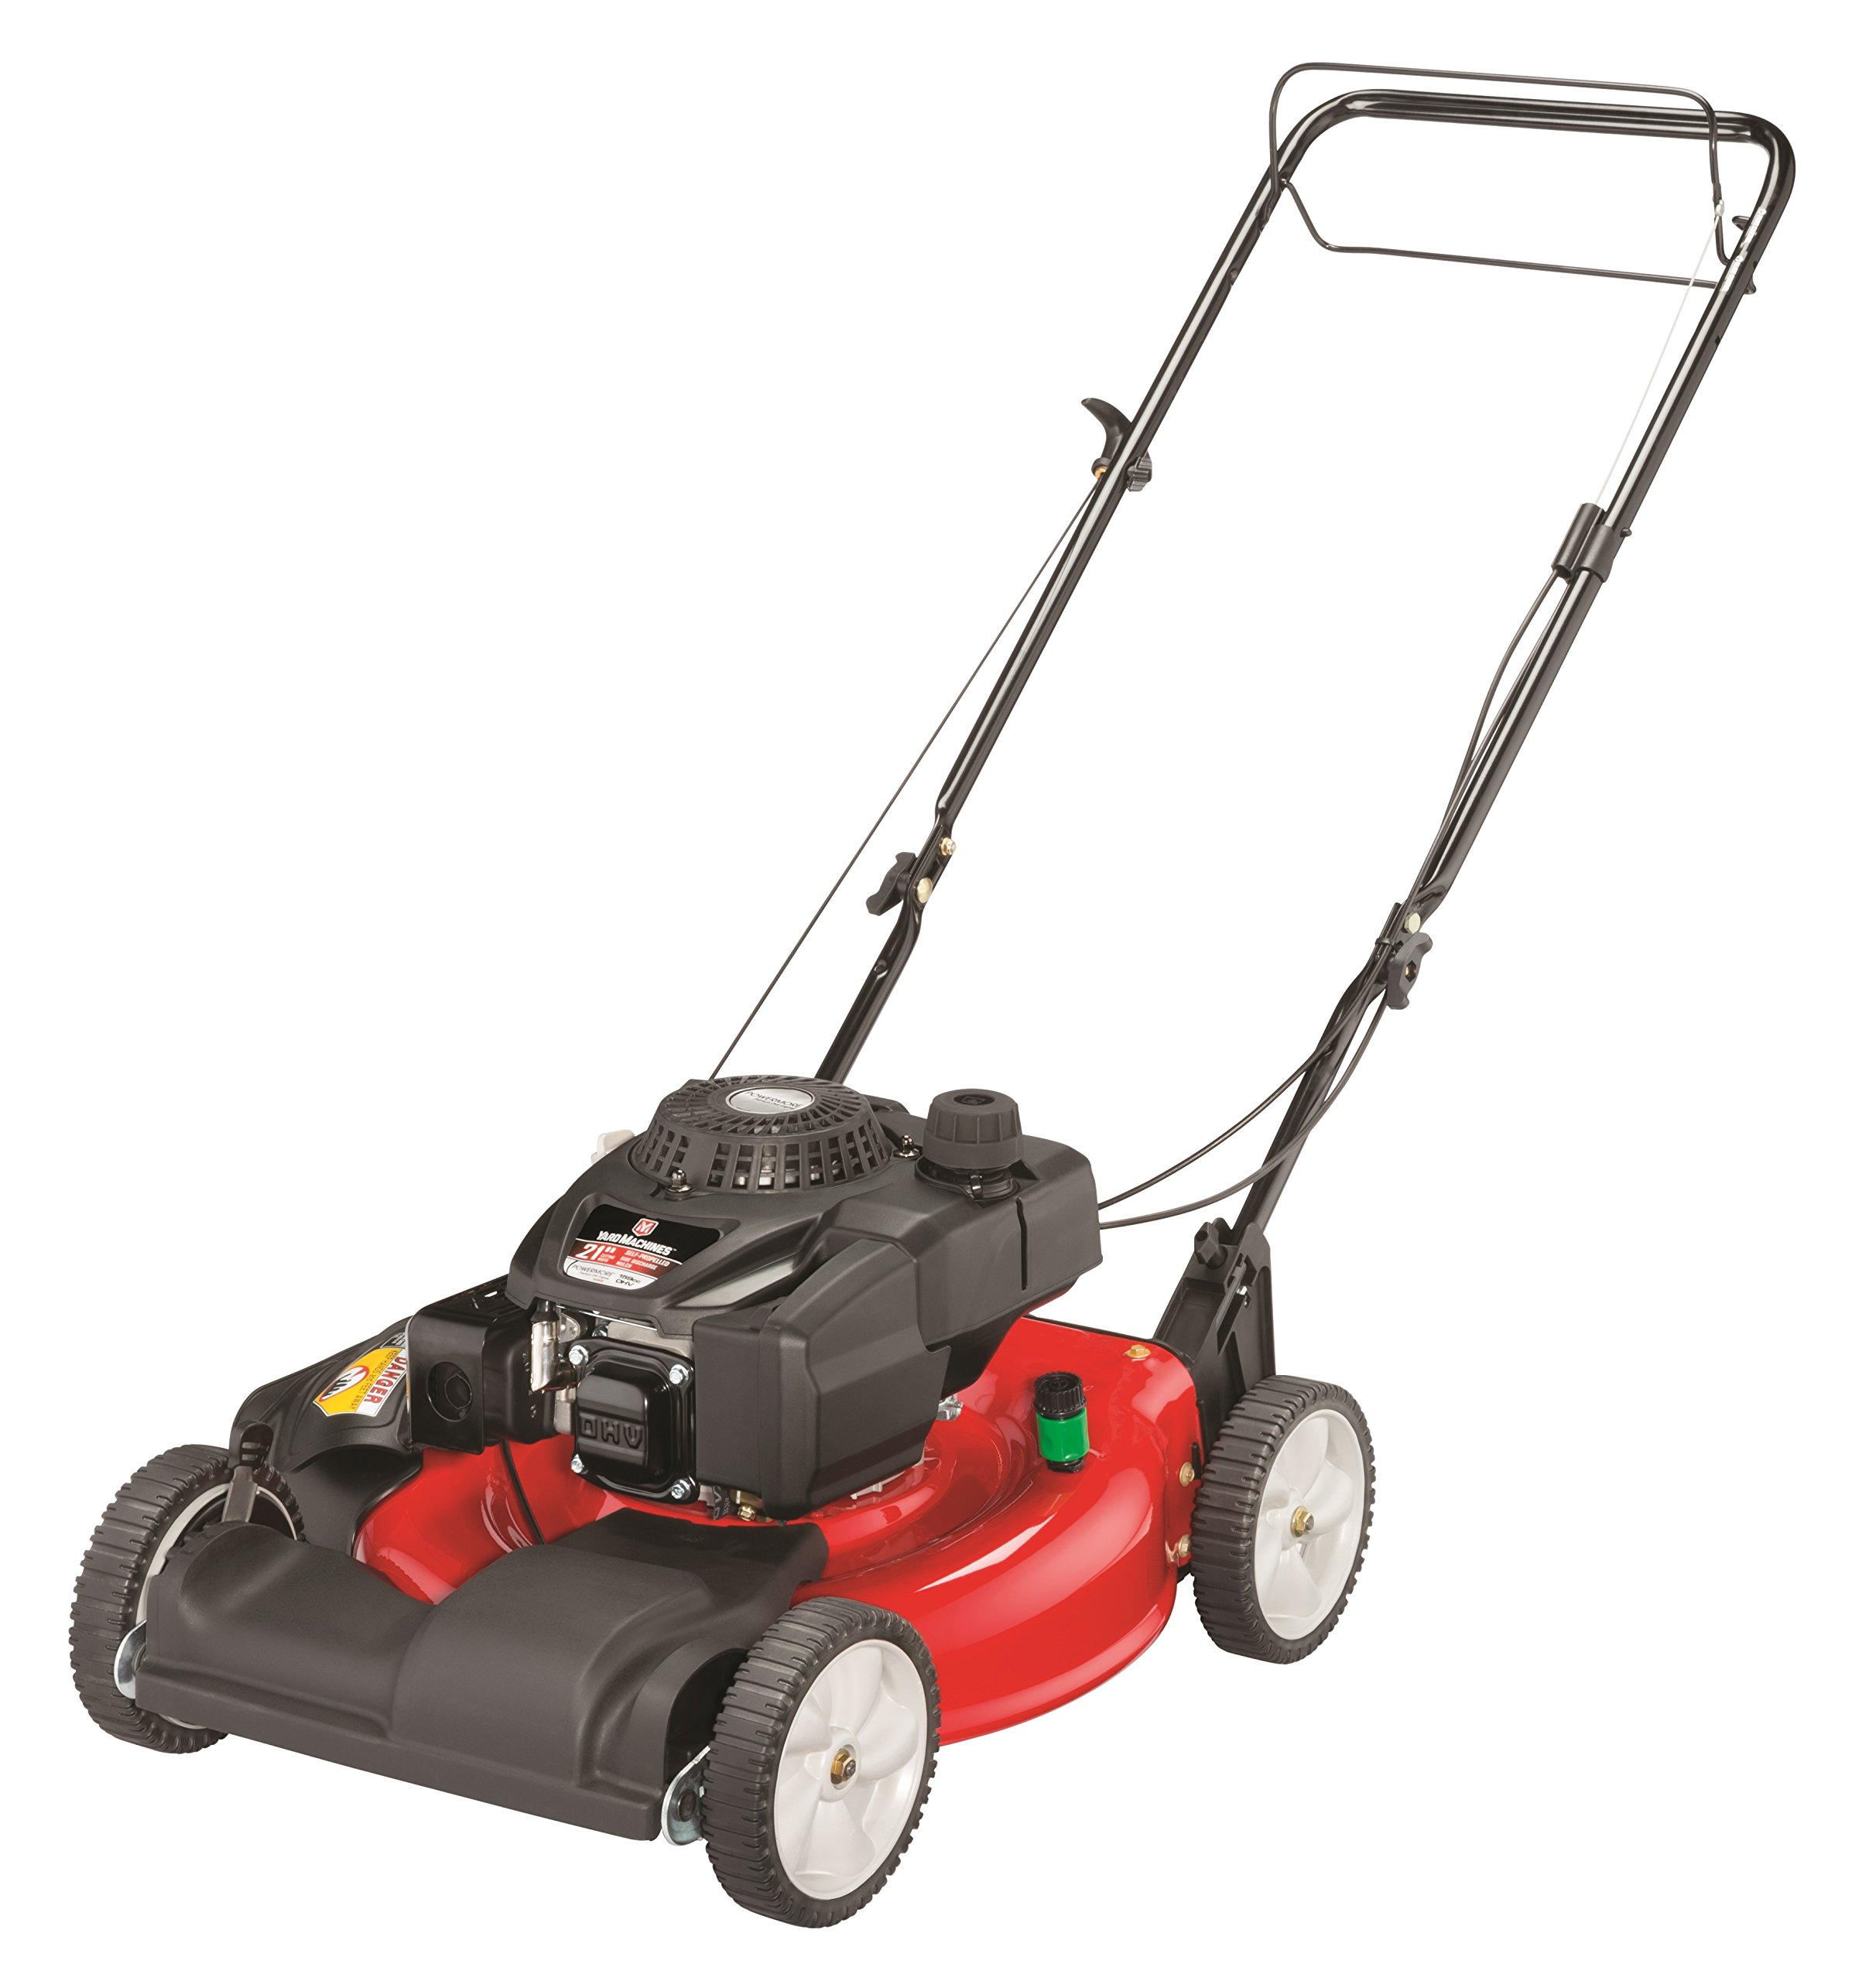 Top 5 Best Self Propelled Lawn Mower Under 300 For The